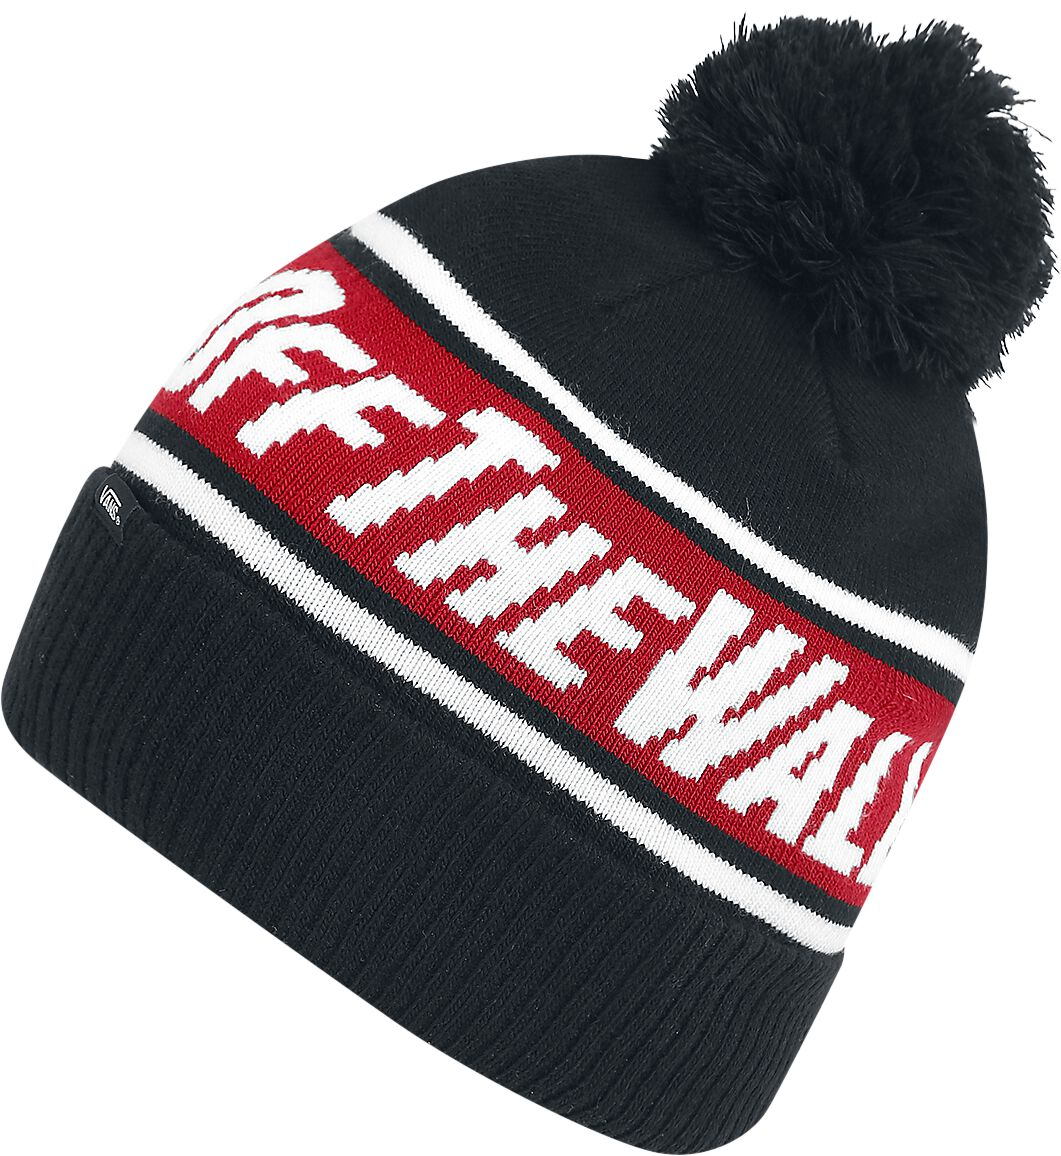 Image of   Vans Off The Wall Pom Beanie Beanie sort-rød